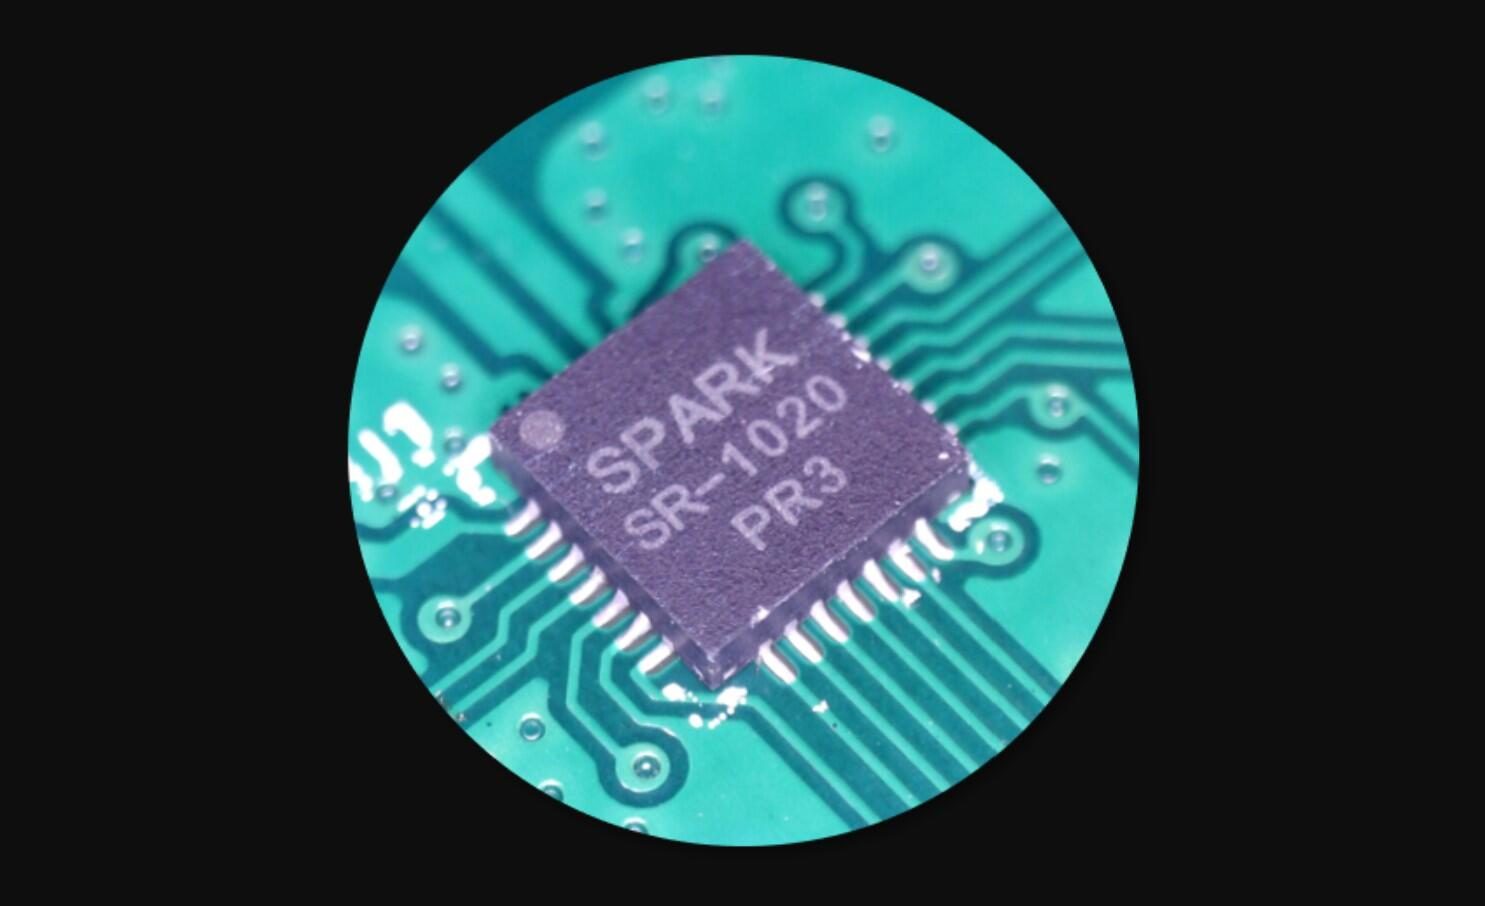 Spark Microsystems UWB chip